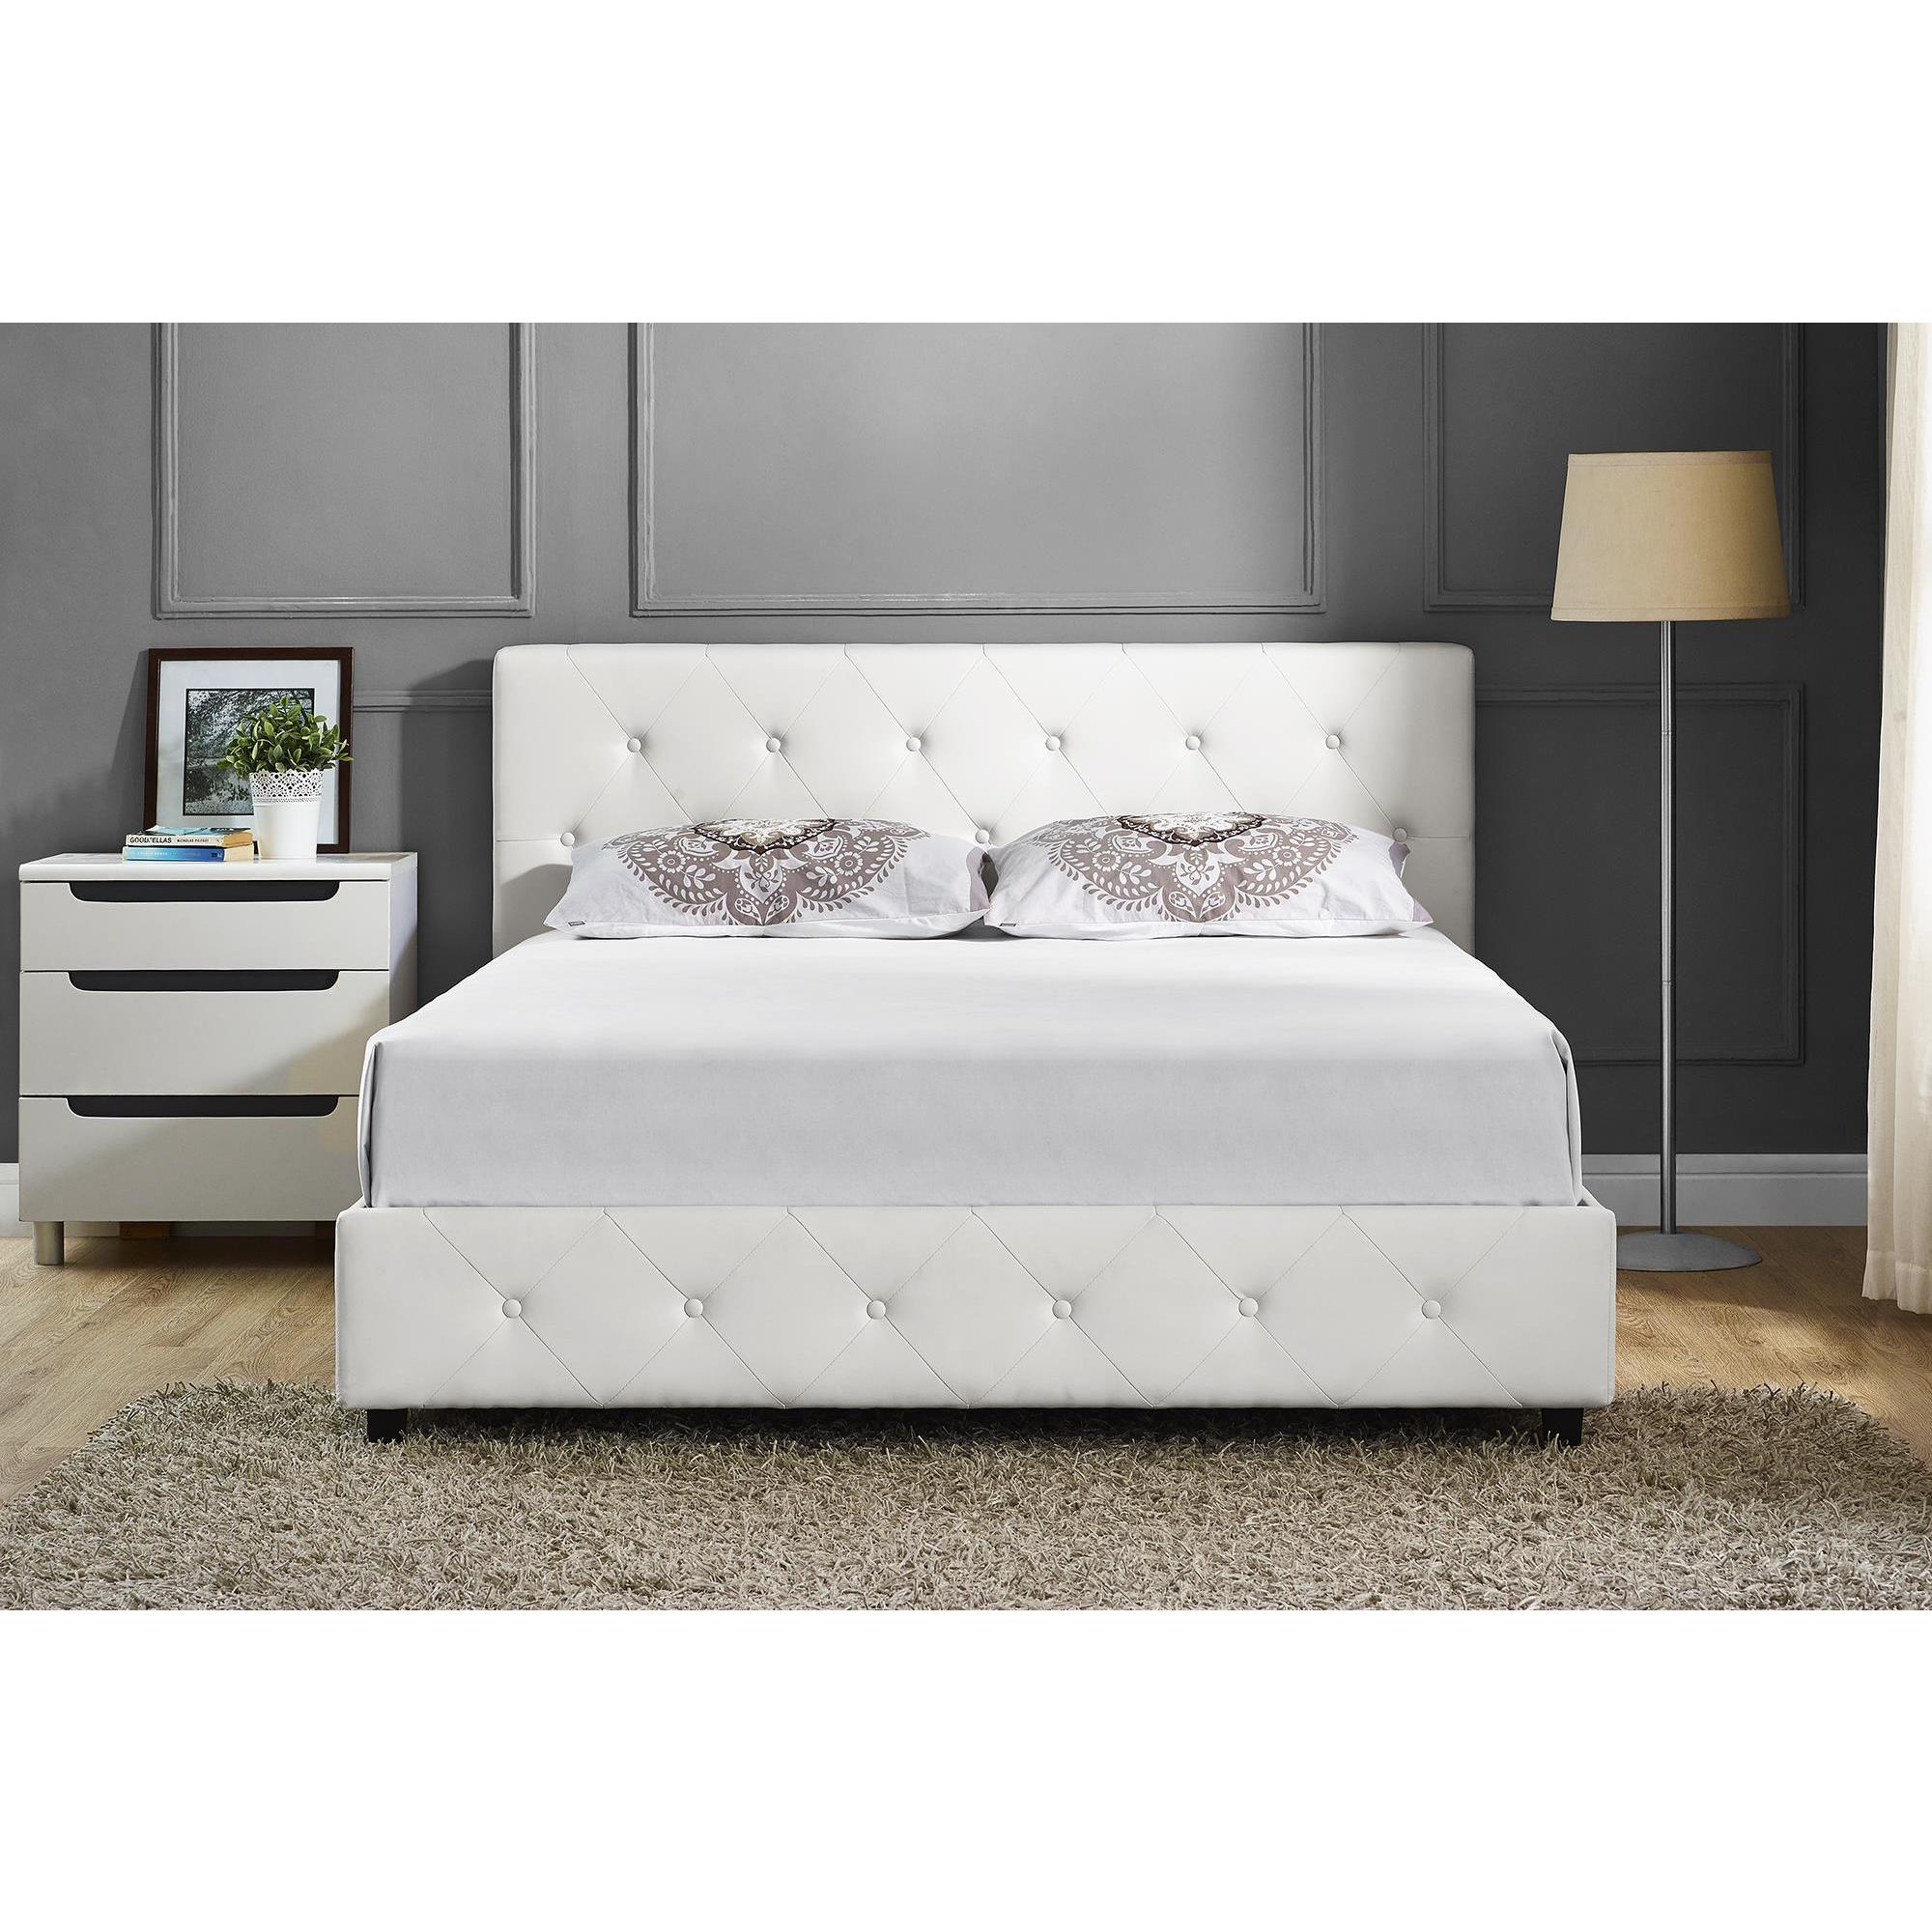 Porch Den Bristol White Faux Leather Full Size Bed